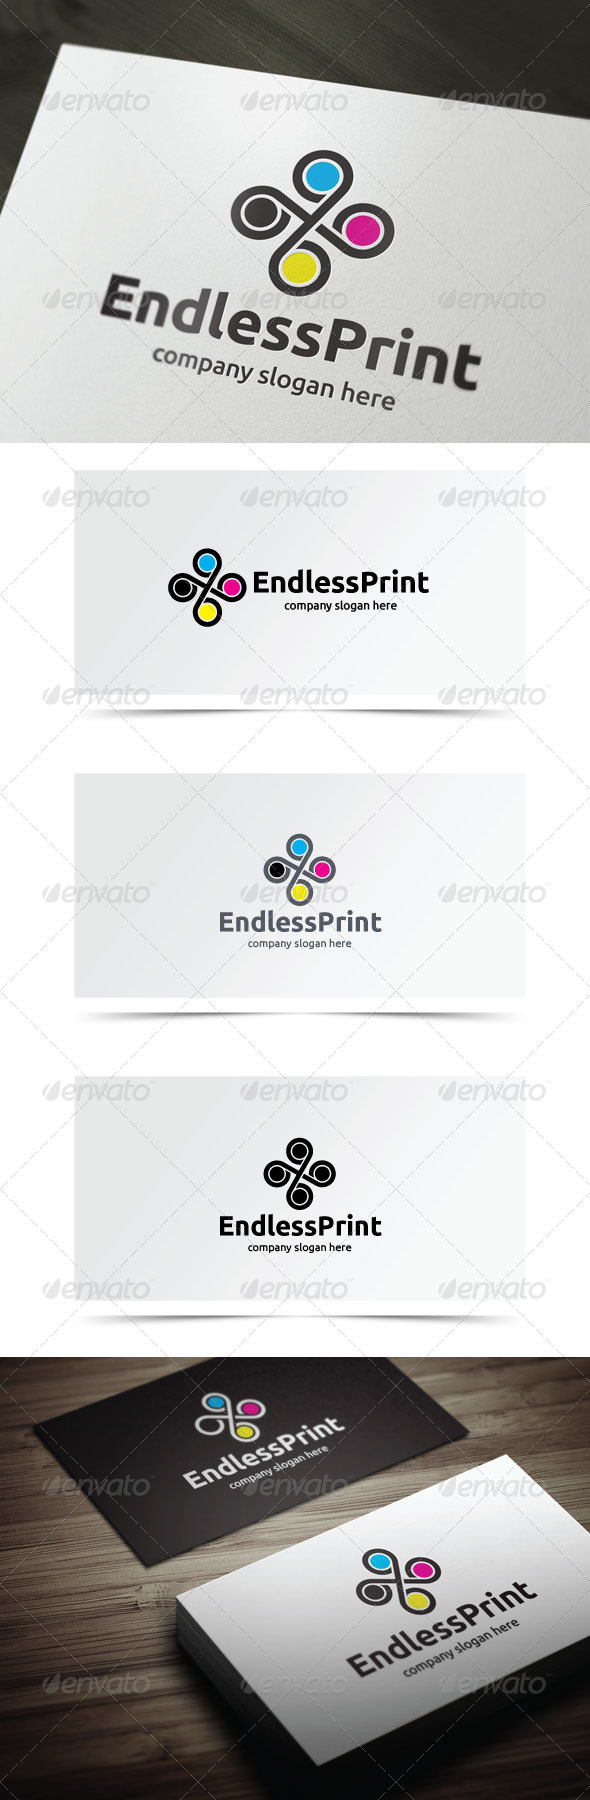 GraphicRiver Endless Print 6807992